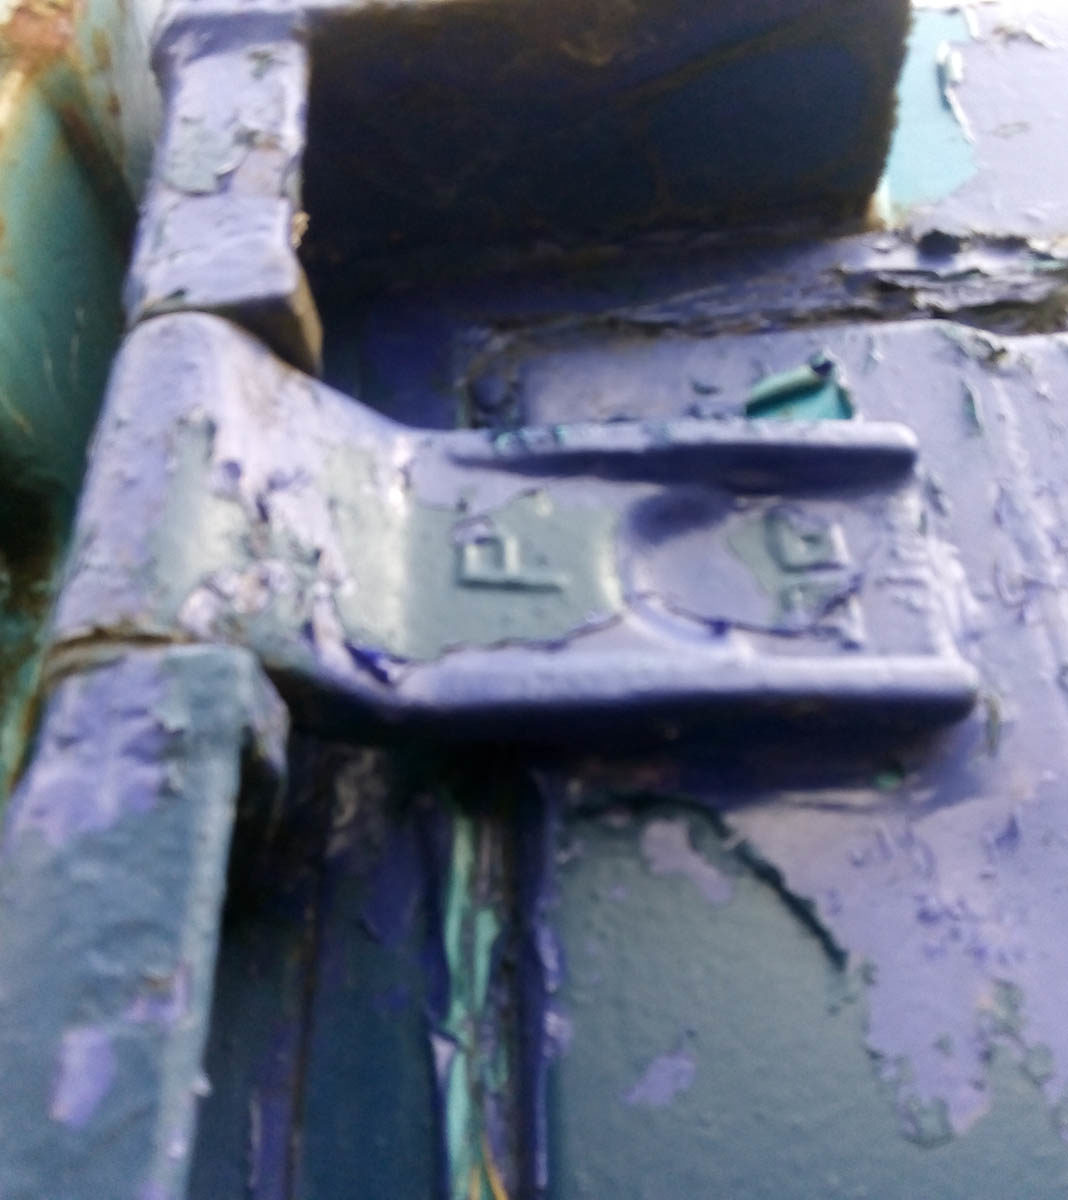 Bloxwich hinge, hinge butts and pins